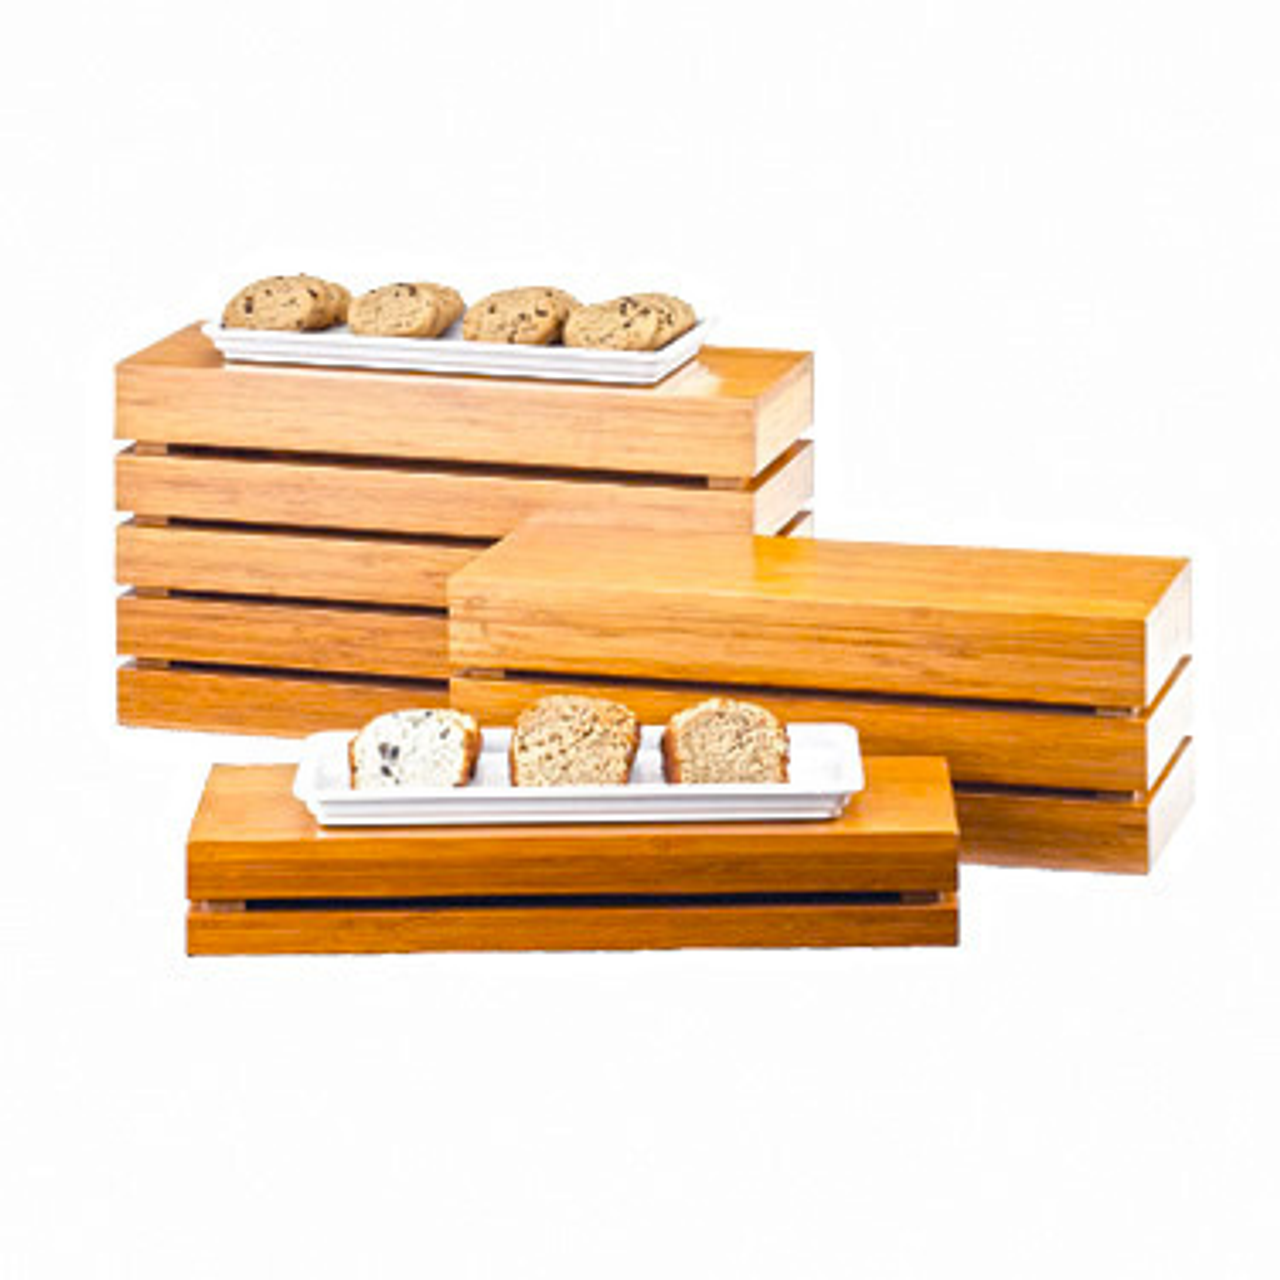 """Crate Riser, 20""""W x 7""""D x 11""""H, rectangle, flip to utilize as a basket, bamboo"""